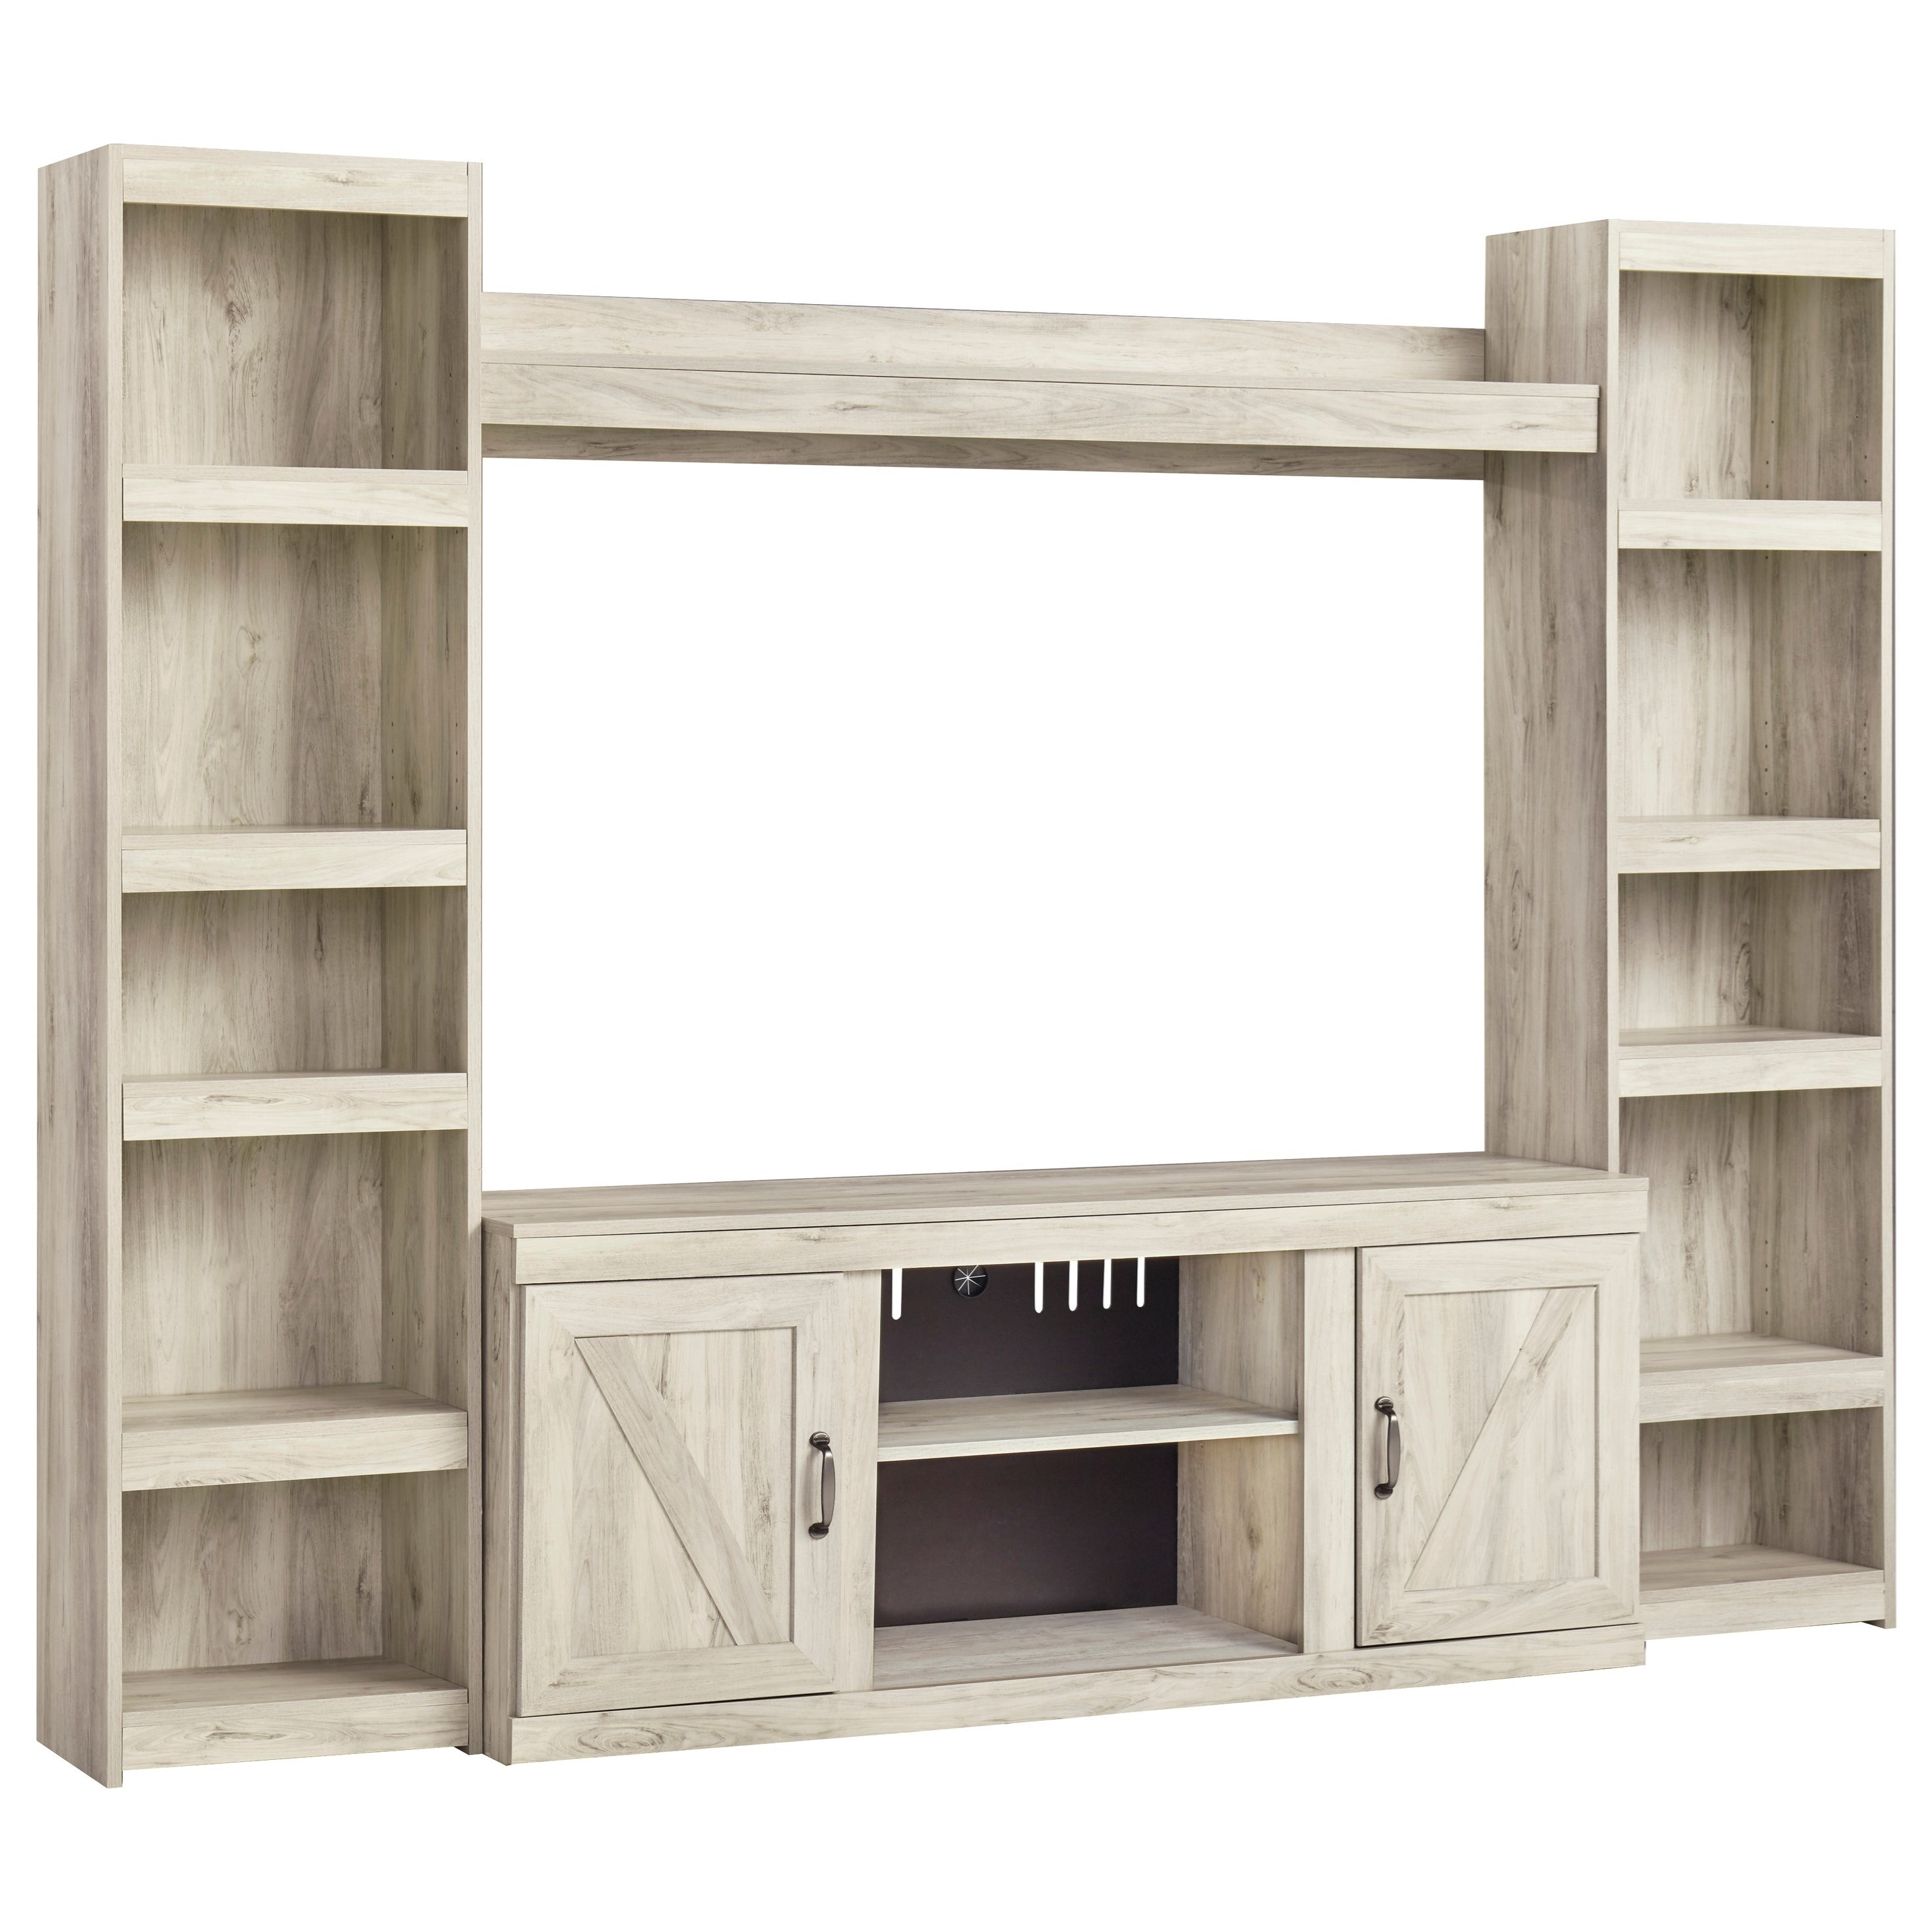 Bellaby TV Stand with 2 Piers and Bridge by Signature Design by Ashley at Zak's Warehouse Clearance Center